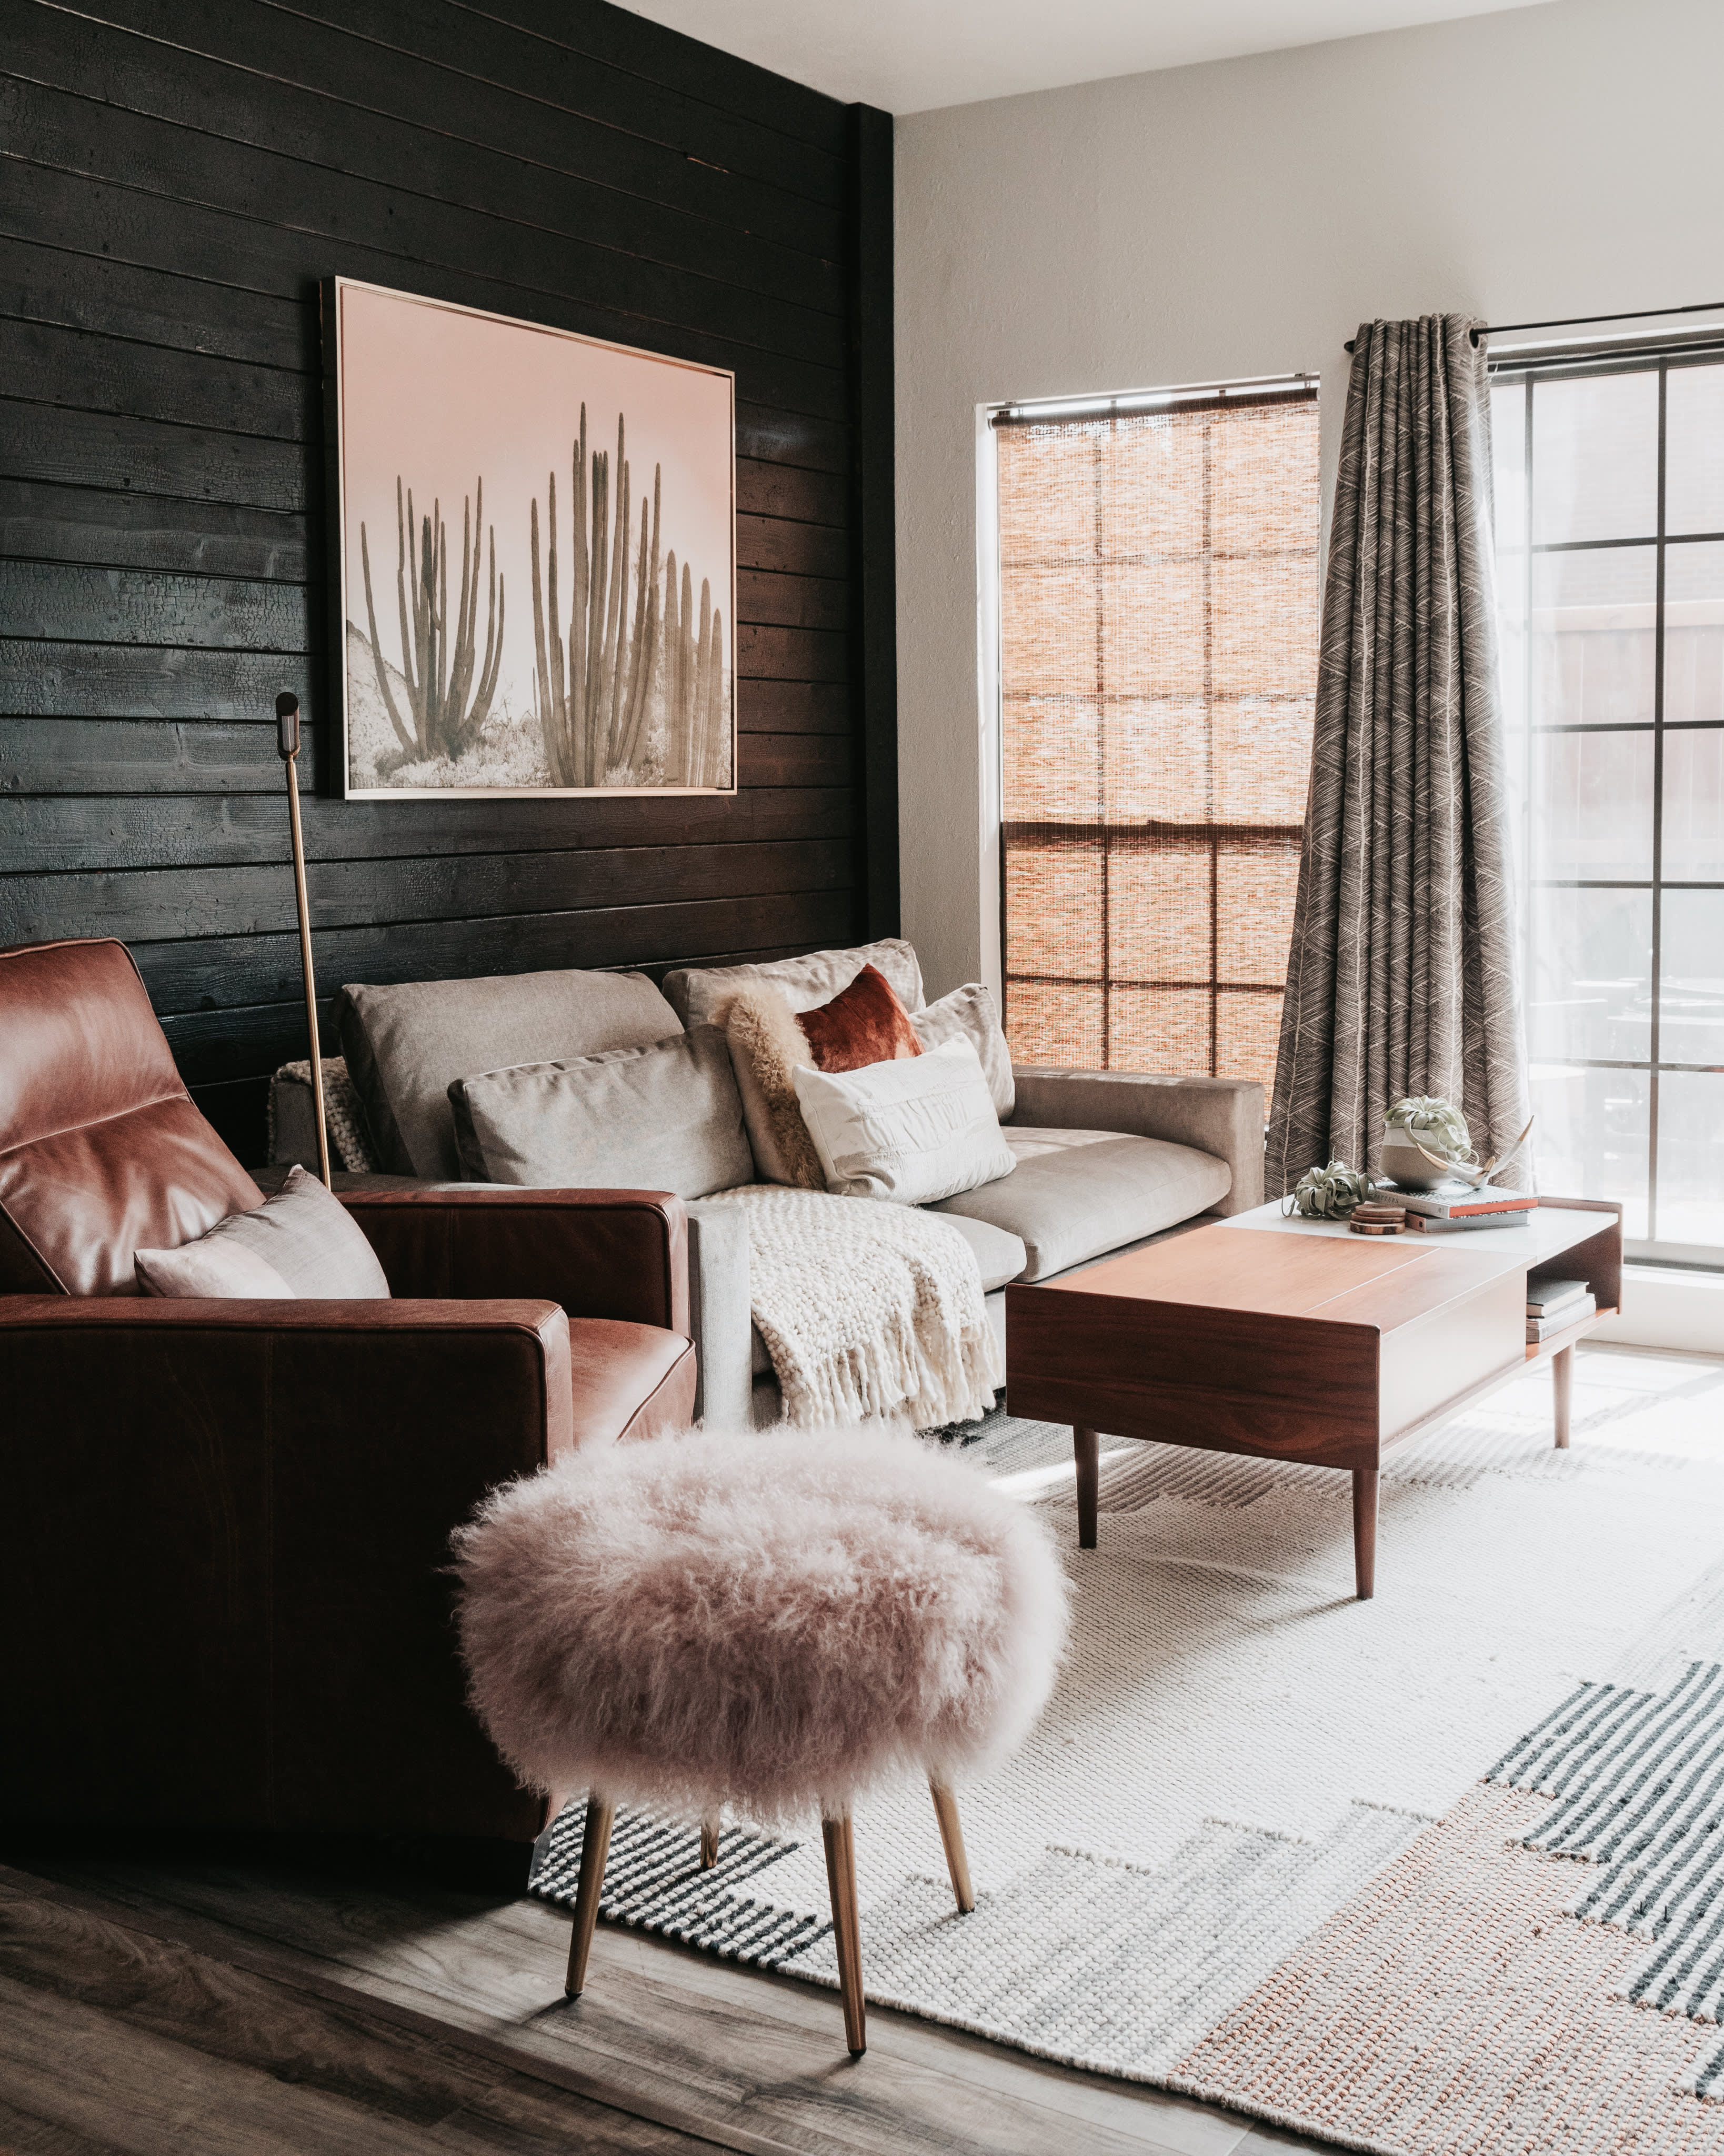 Super Scandinavian Minimal Bohemian Style Home Apartment Therapy Andrewgaddart Wooden Chair Designs For Living Room Andrewgaddartcom